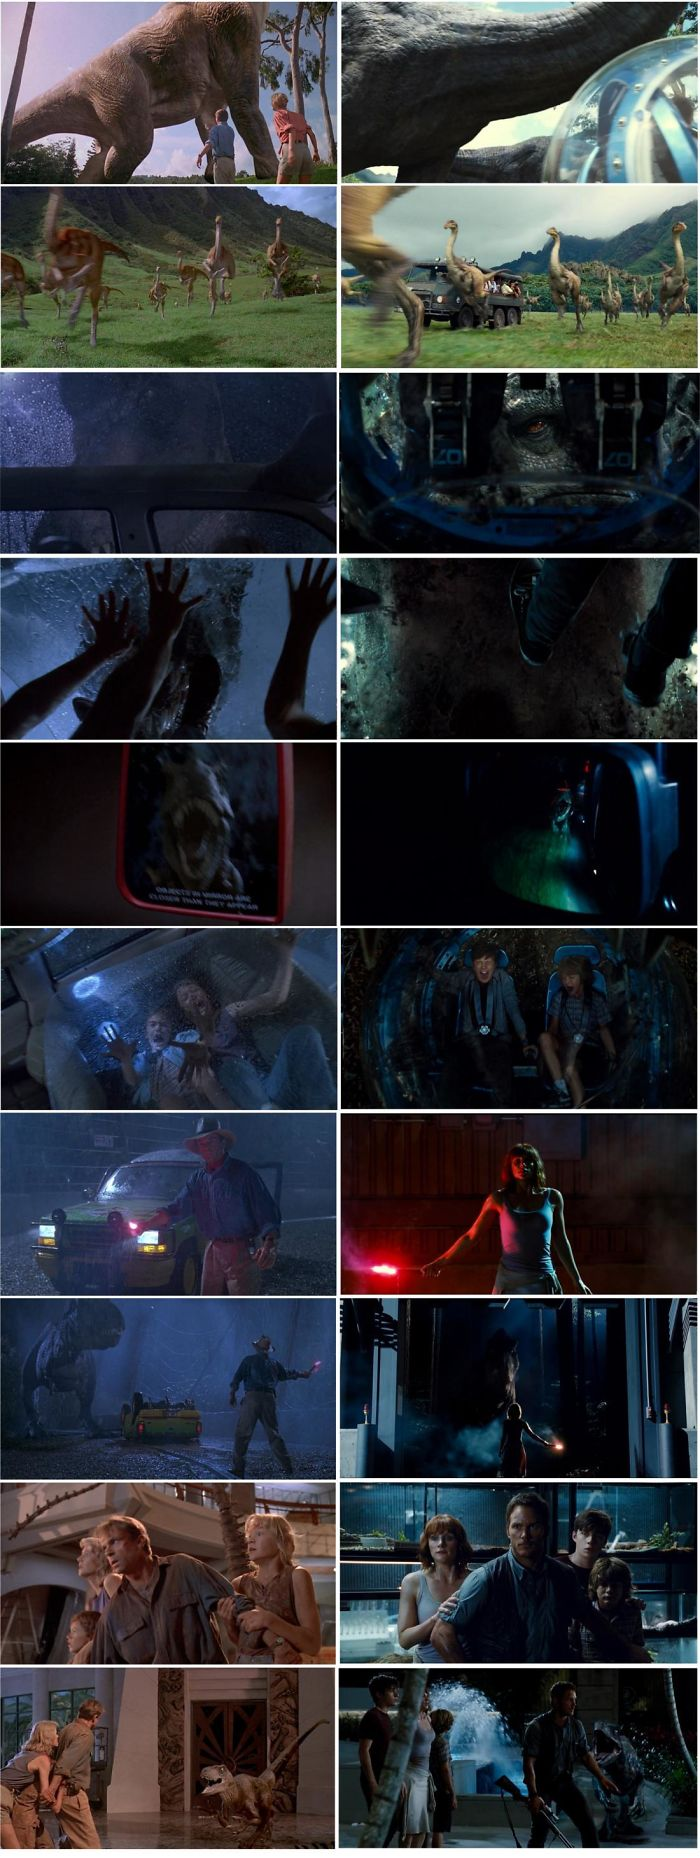 A List To All The Visual References That Jurassic World (2015) Did To Jurassic Park (1993)